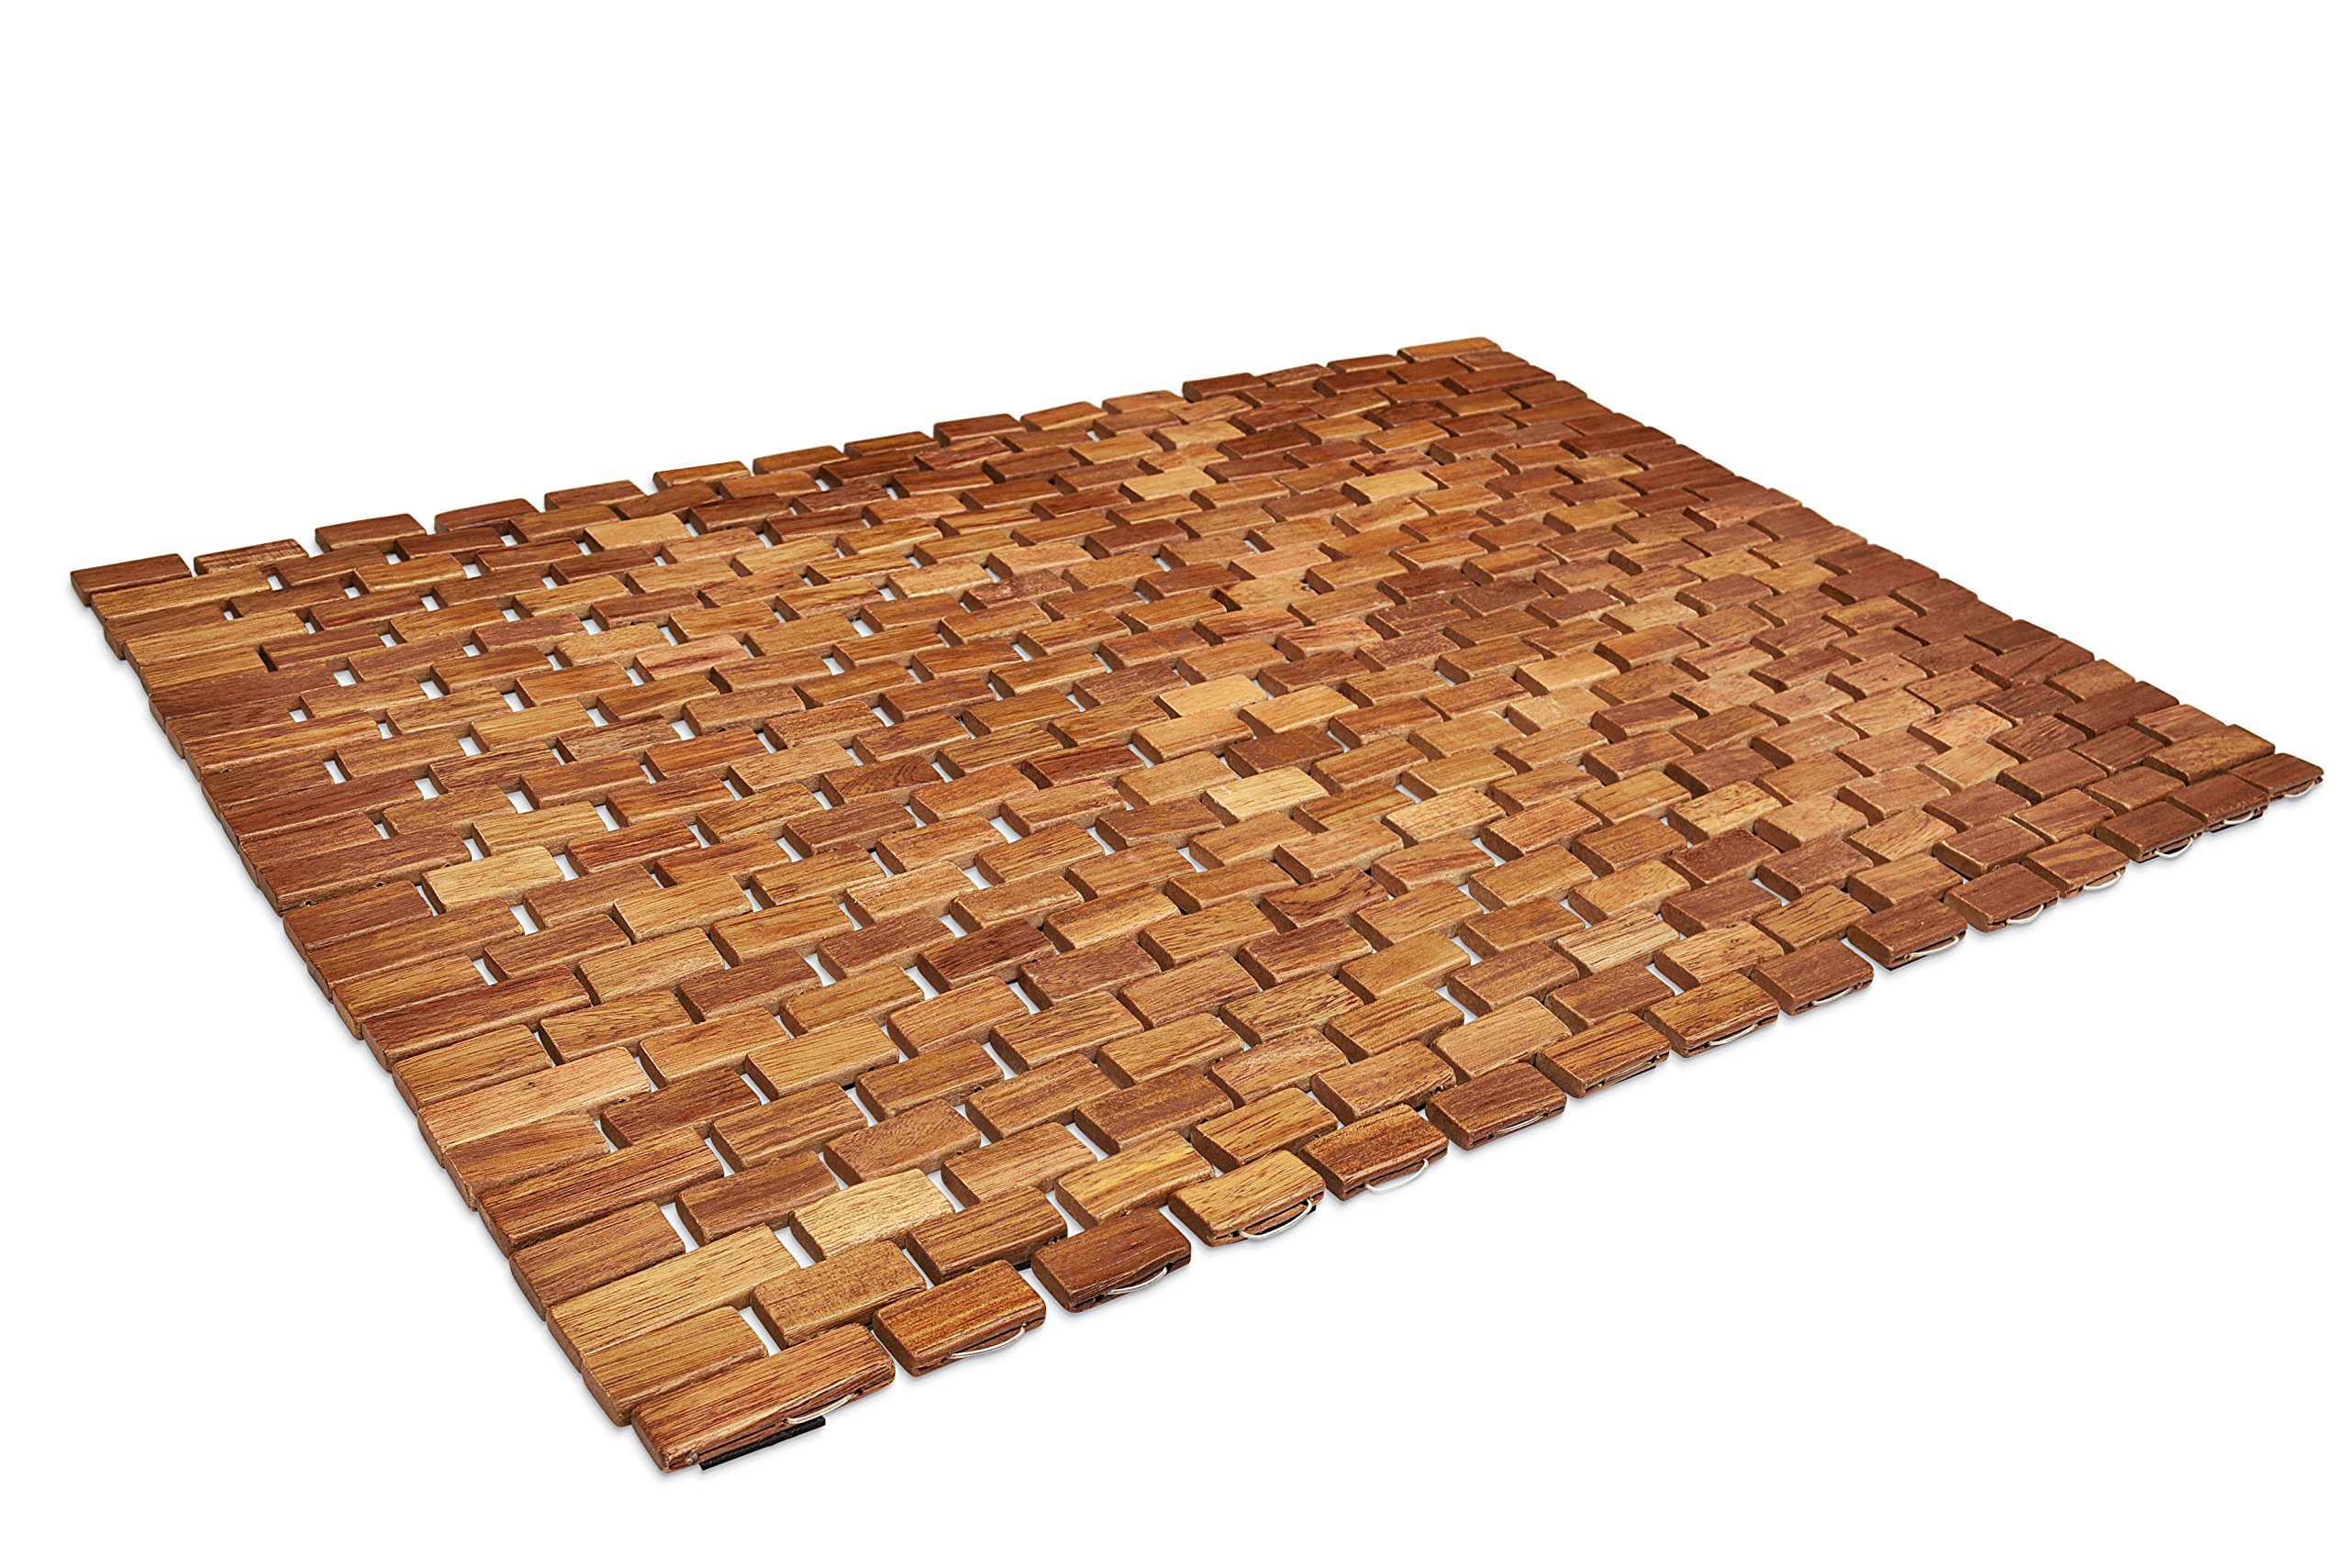 Soothing Styles Handcrafted Folding Teak Shower Mat | Mildew Resistant Teak Bath Mat with Non Slip Grips | Easily Rolls Up For Use Inside Or Outside Of The Bathtub Or Shower